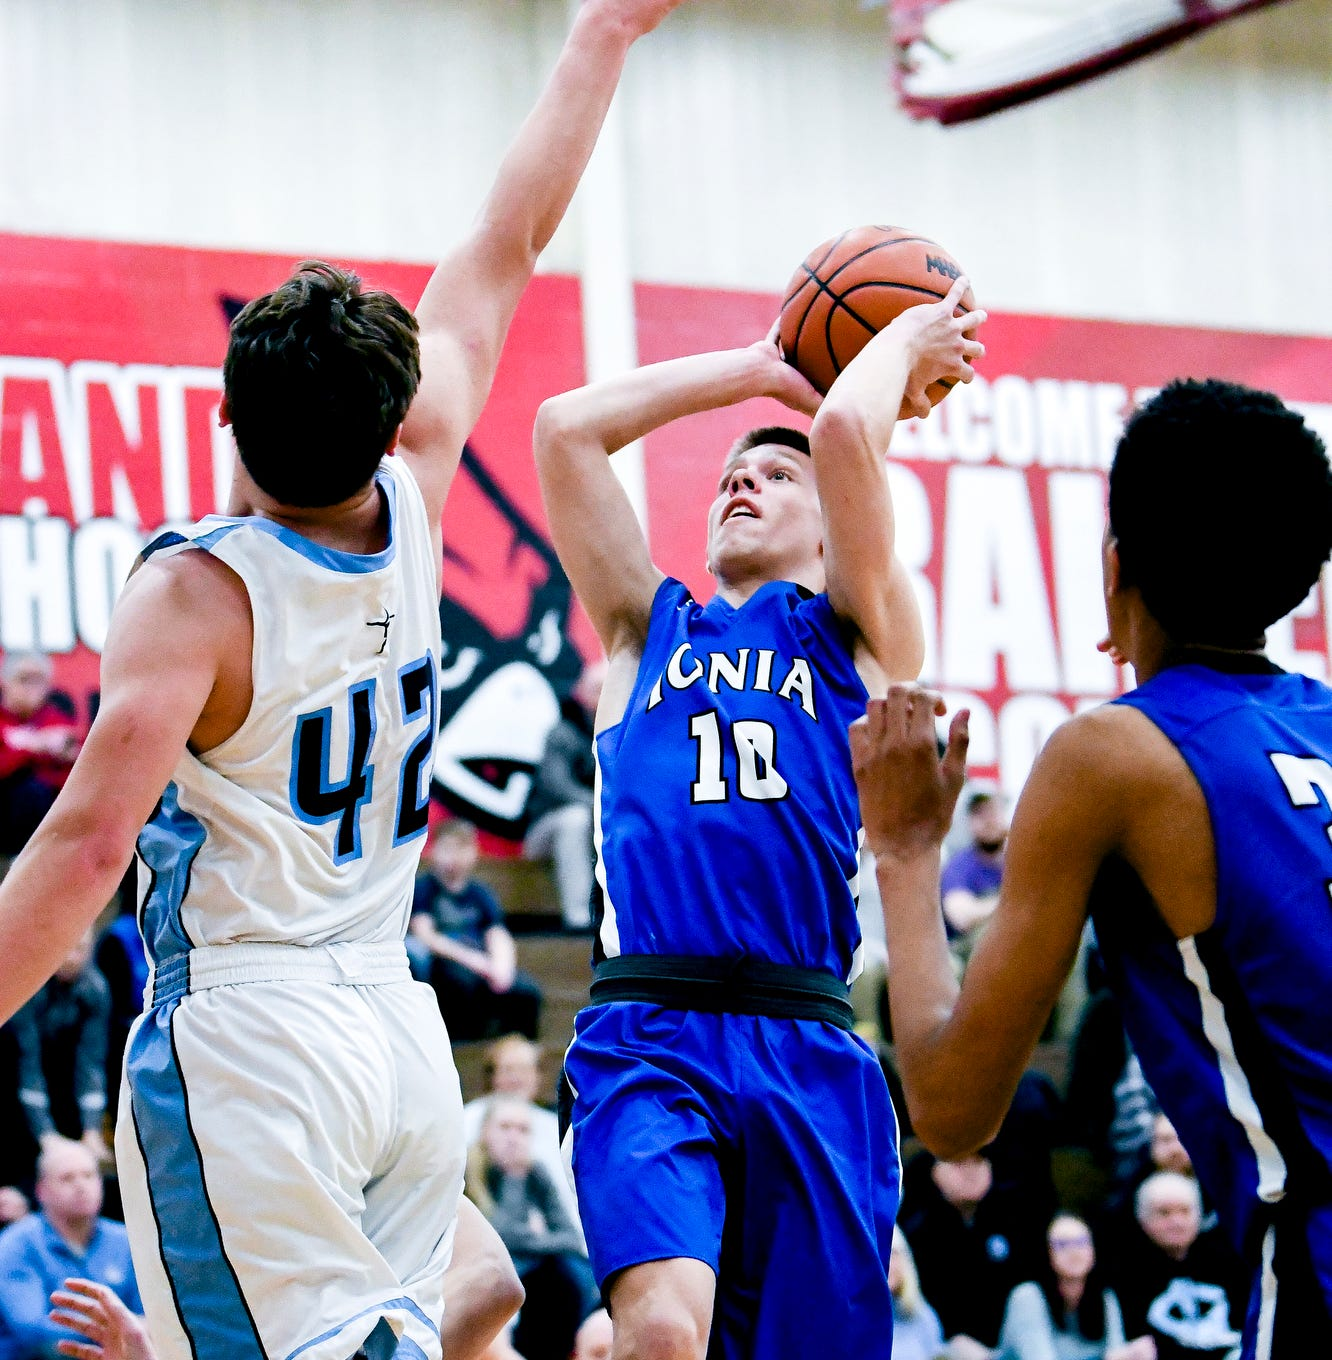 Ionia's Nick Szymanski, right, makes a basket and is fouled as Lansing Catholic's Charlie Nylander, left, defends during a Division 2 district opener in February. The MHSAA Representative Council approved seeding at he district level of the state tournament for next school year.